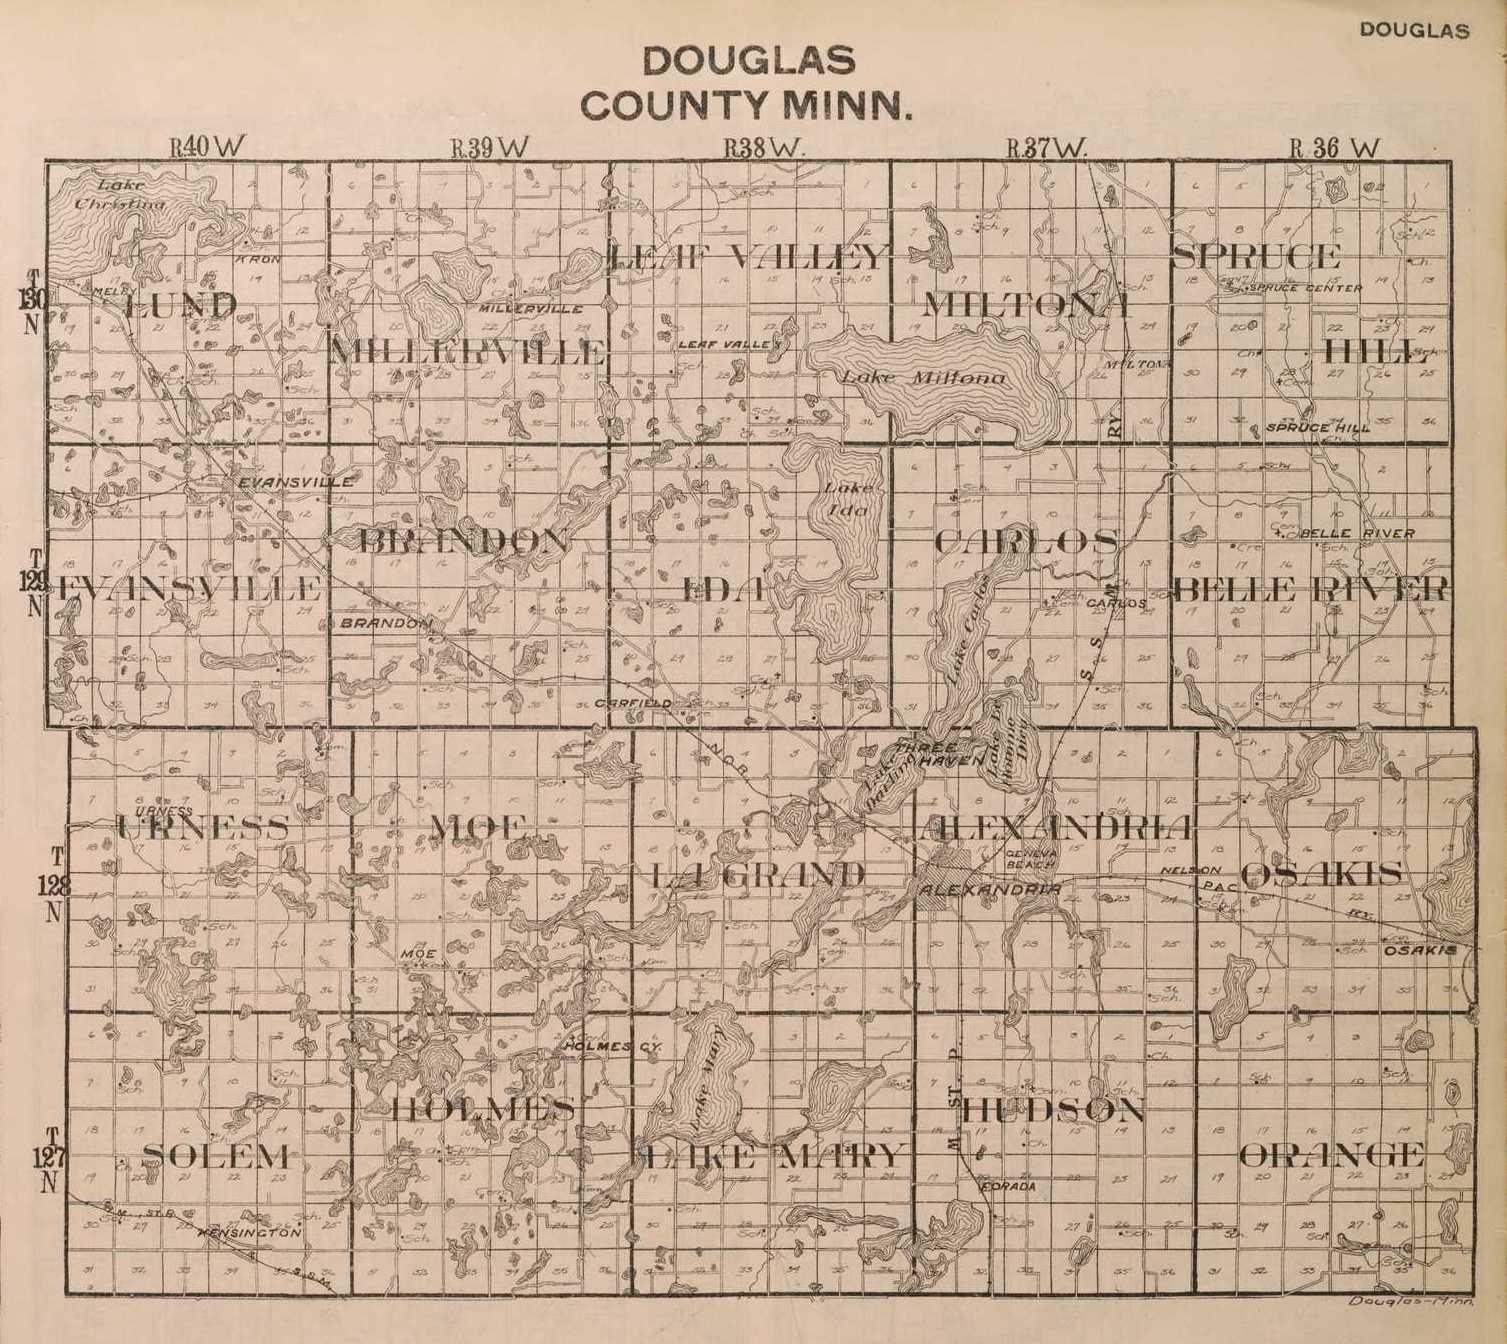 County Minnesota Map.Townships Of Douglas County Minnesota Douglas County Historical